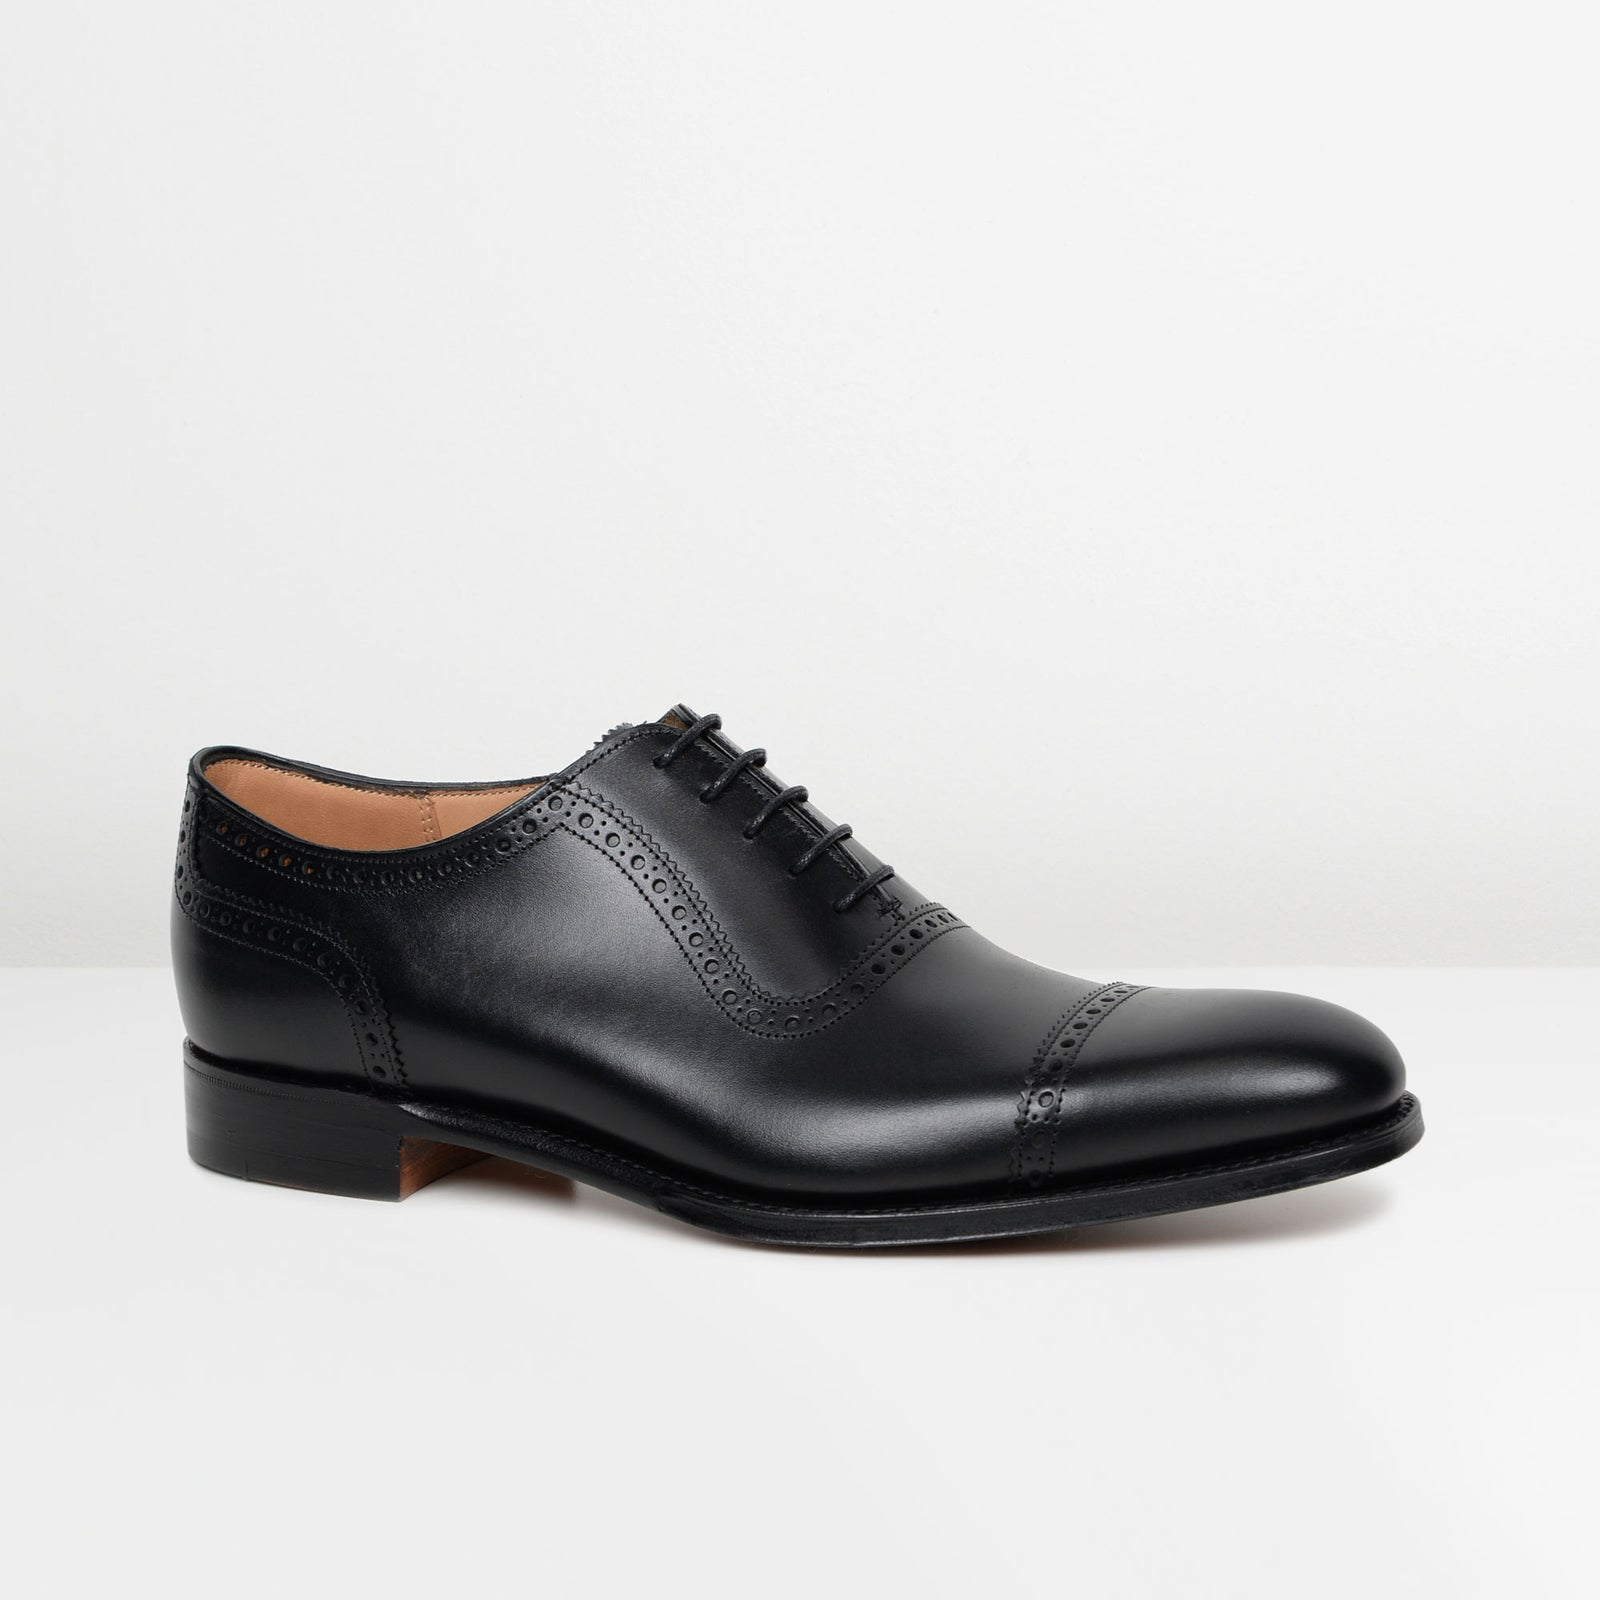 Black Fenchurch Oxford Shoes